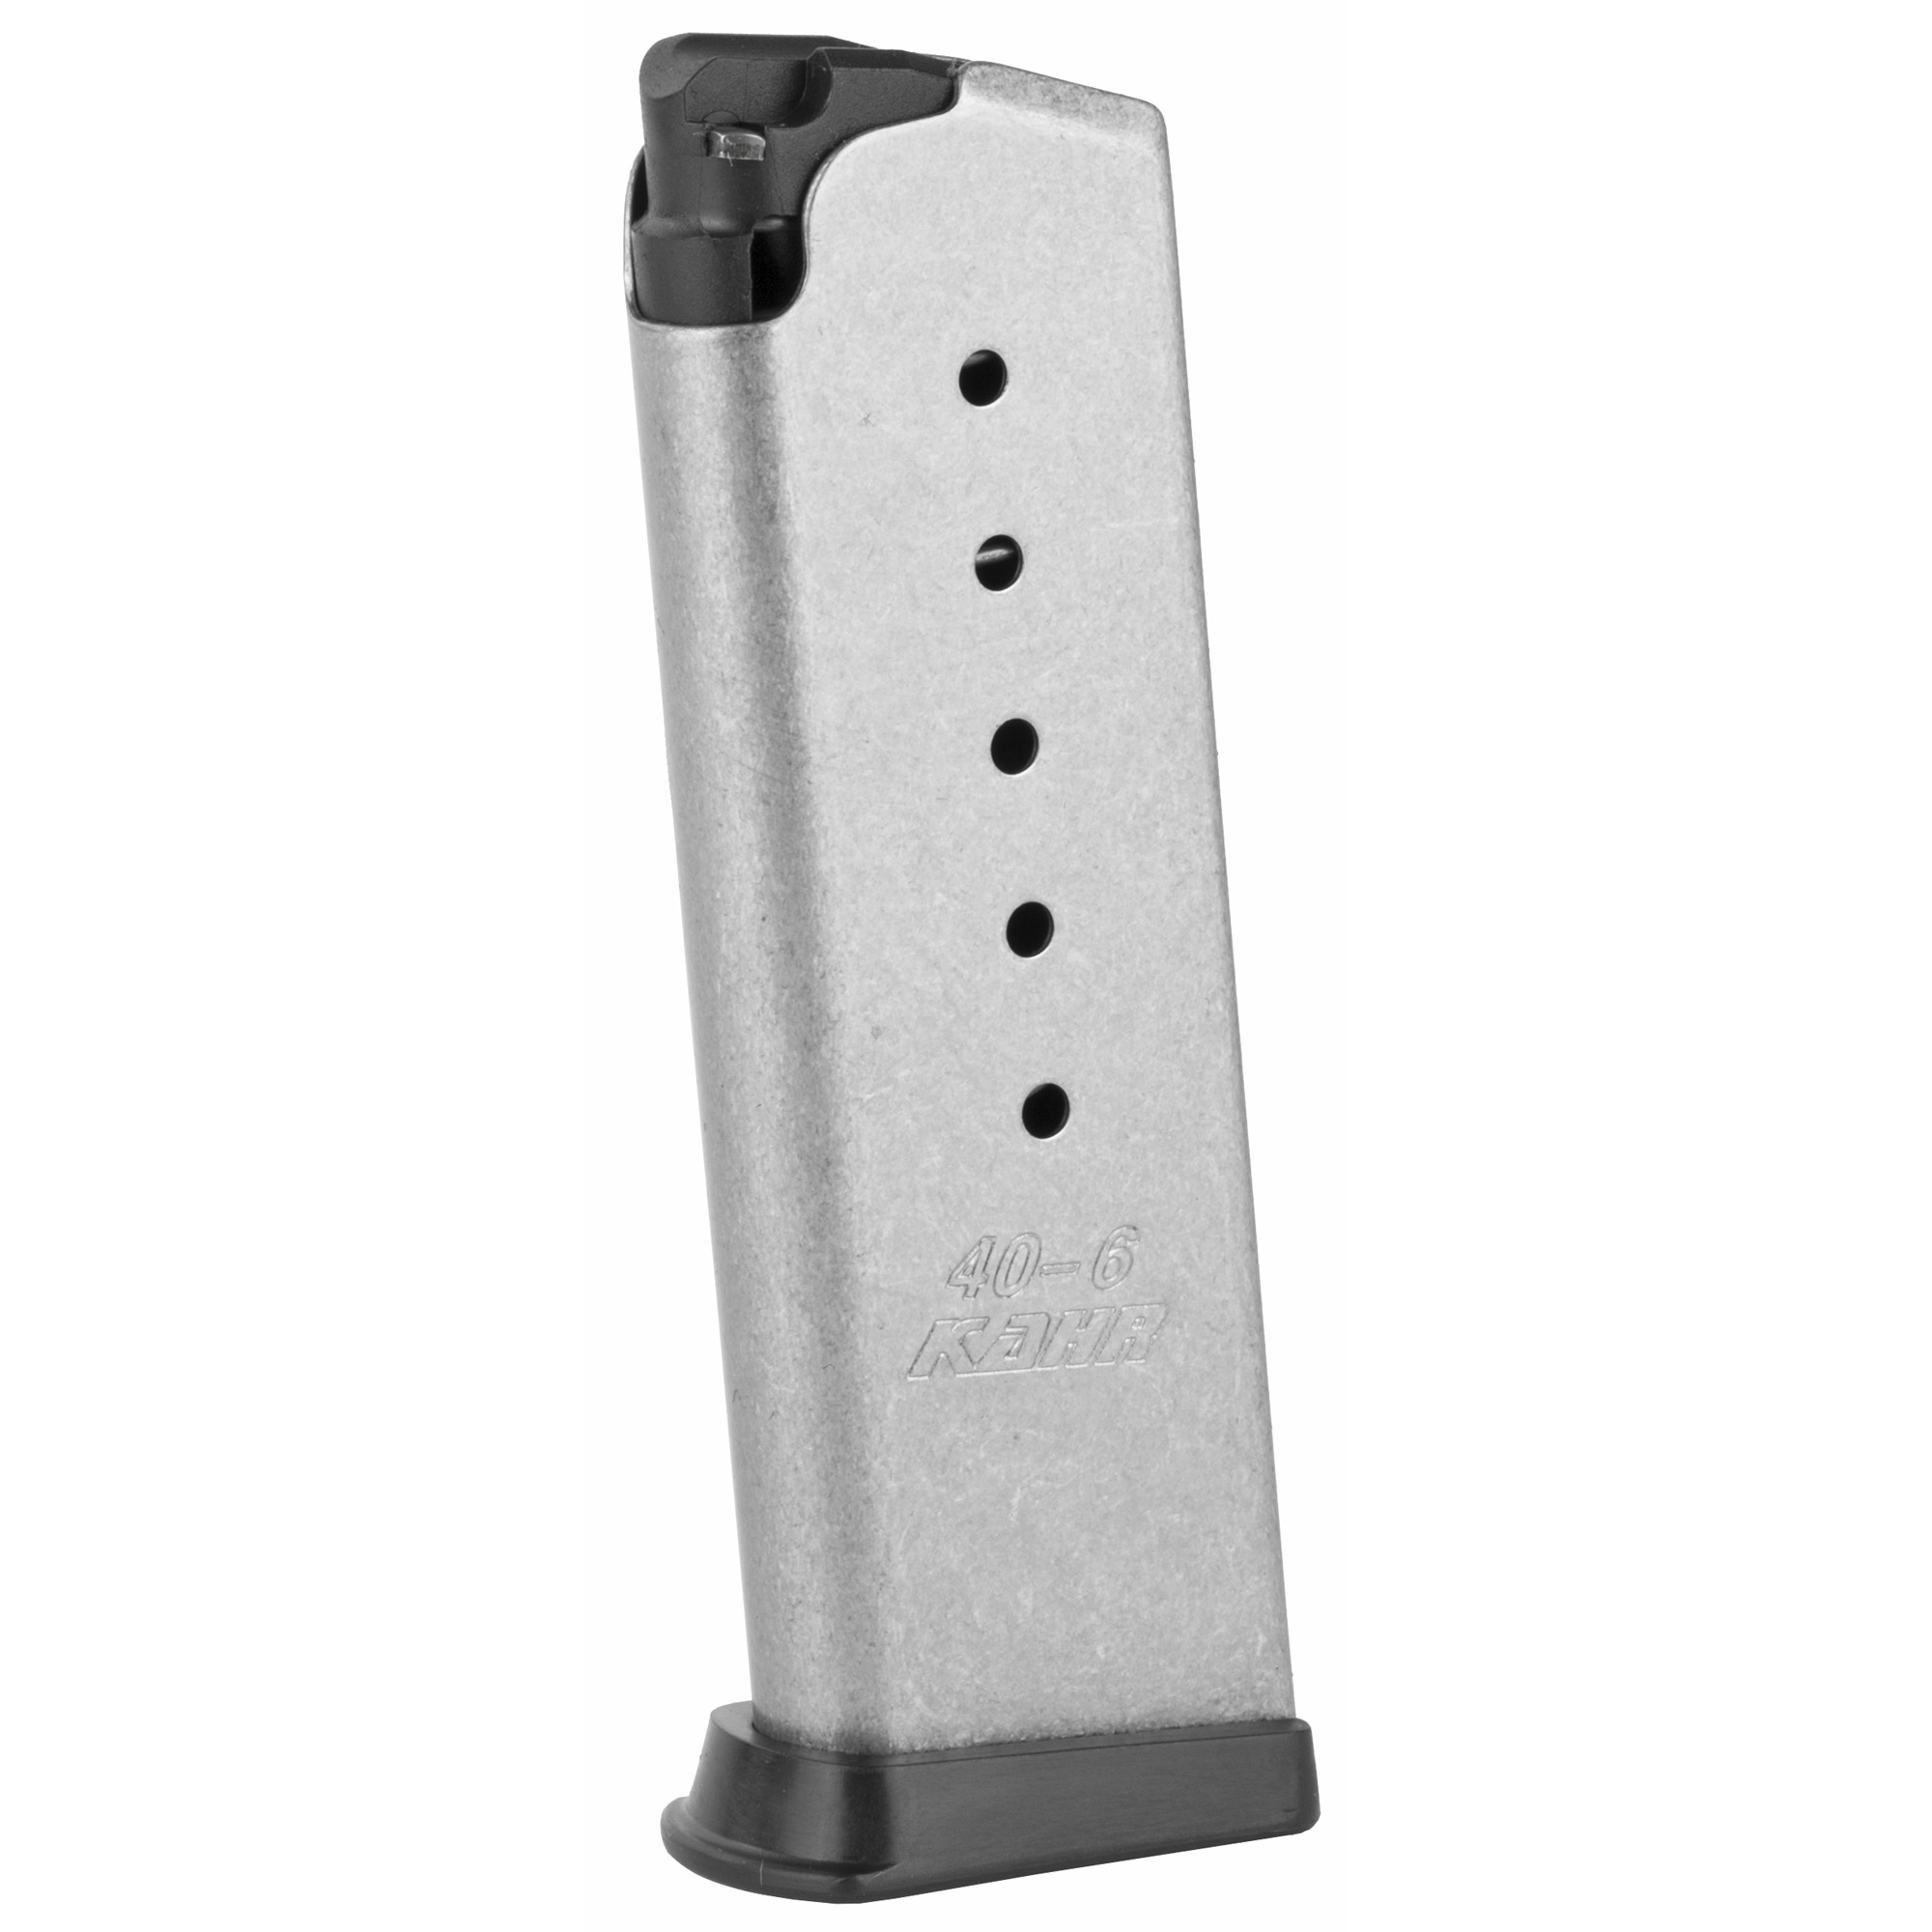 """This magazine is made to KAHR ARMS specifications and tolerances using high quality materials that provide perfect fit"""" durability and reliability."""